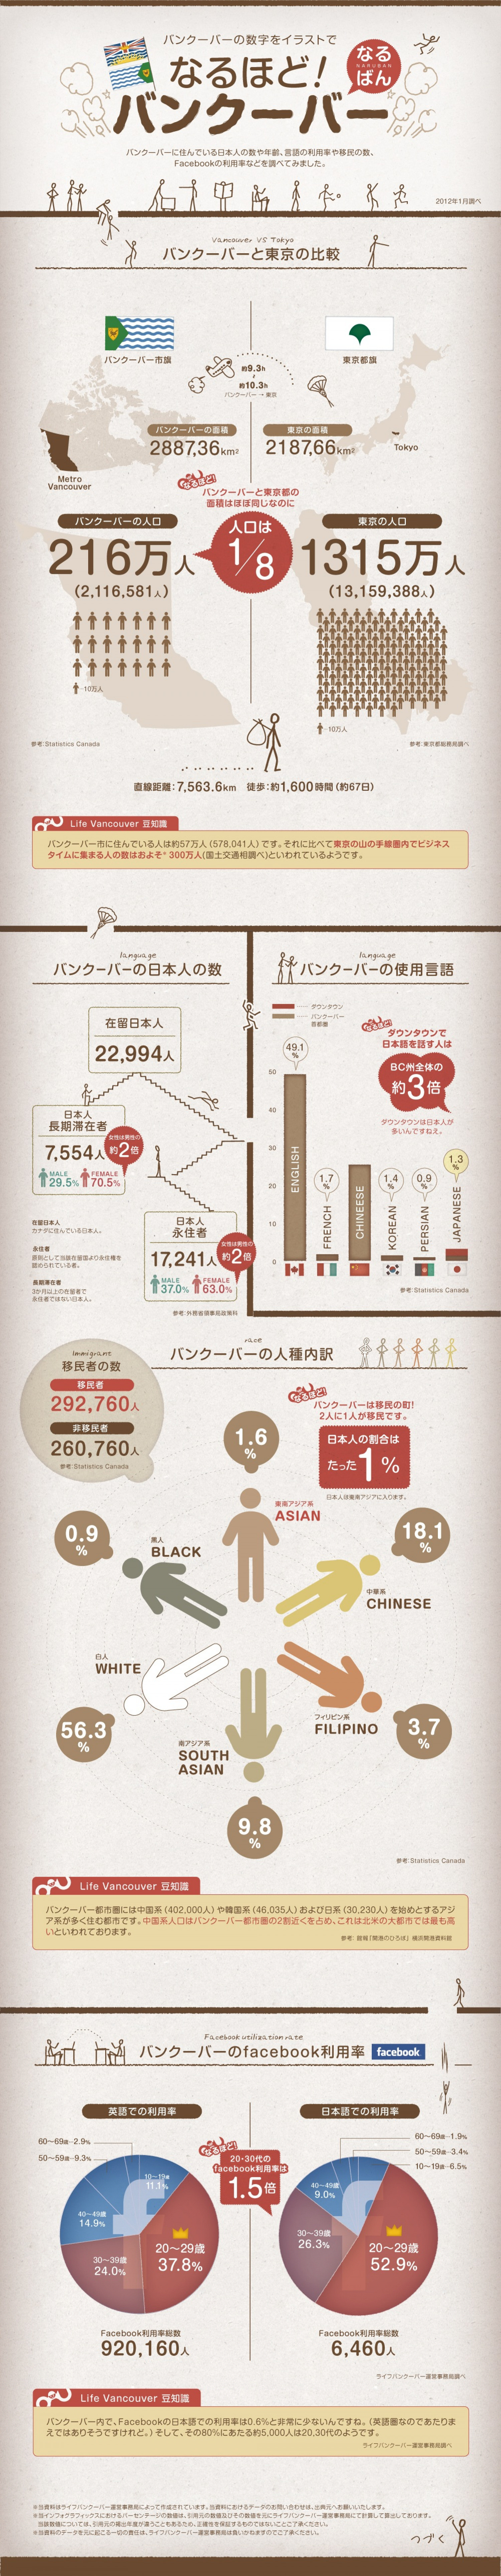 Japanese live in Vancouver Infographic